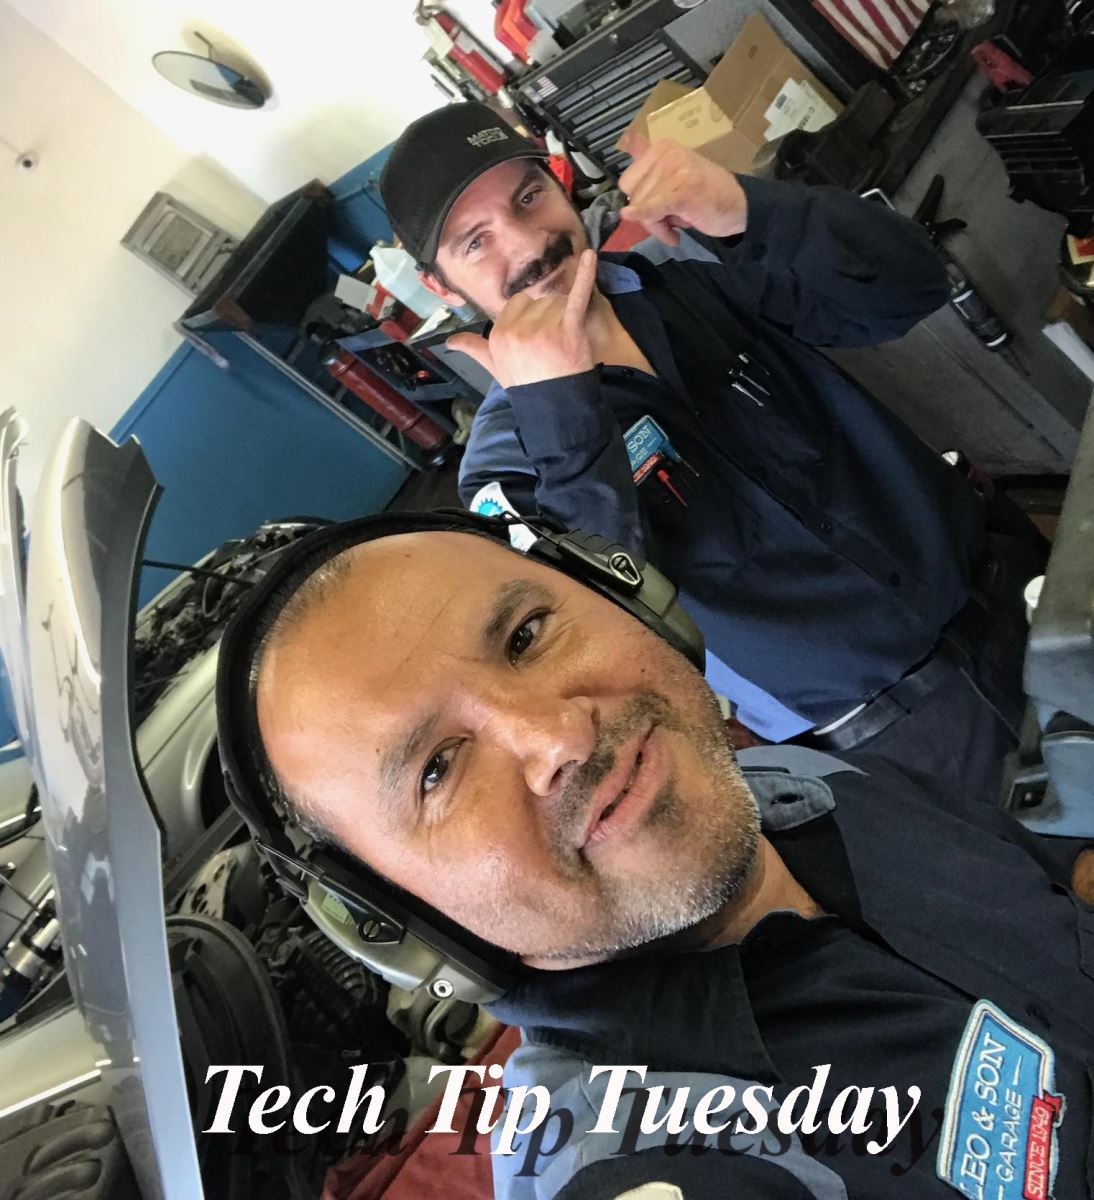 Tech tip Tuesday - January 23